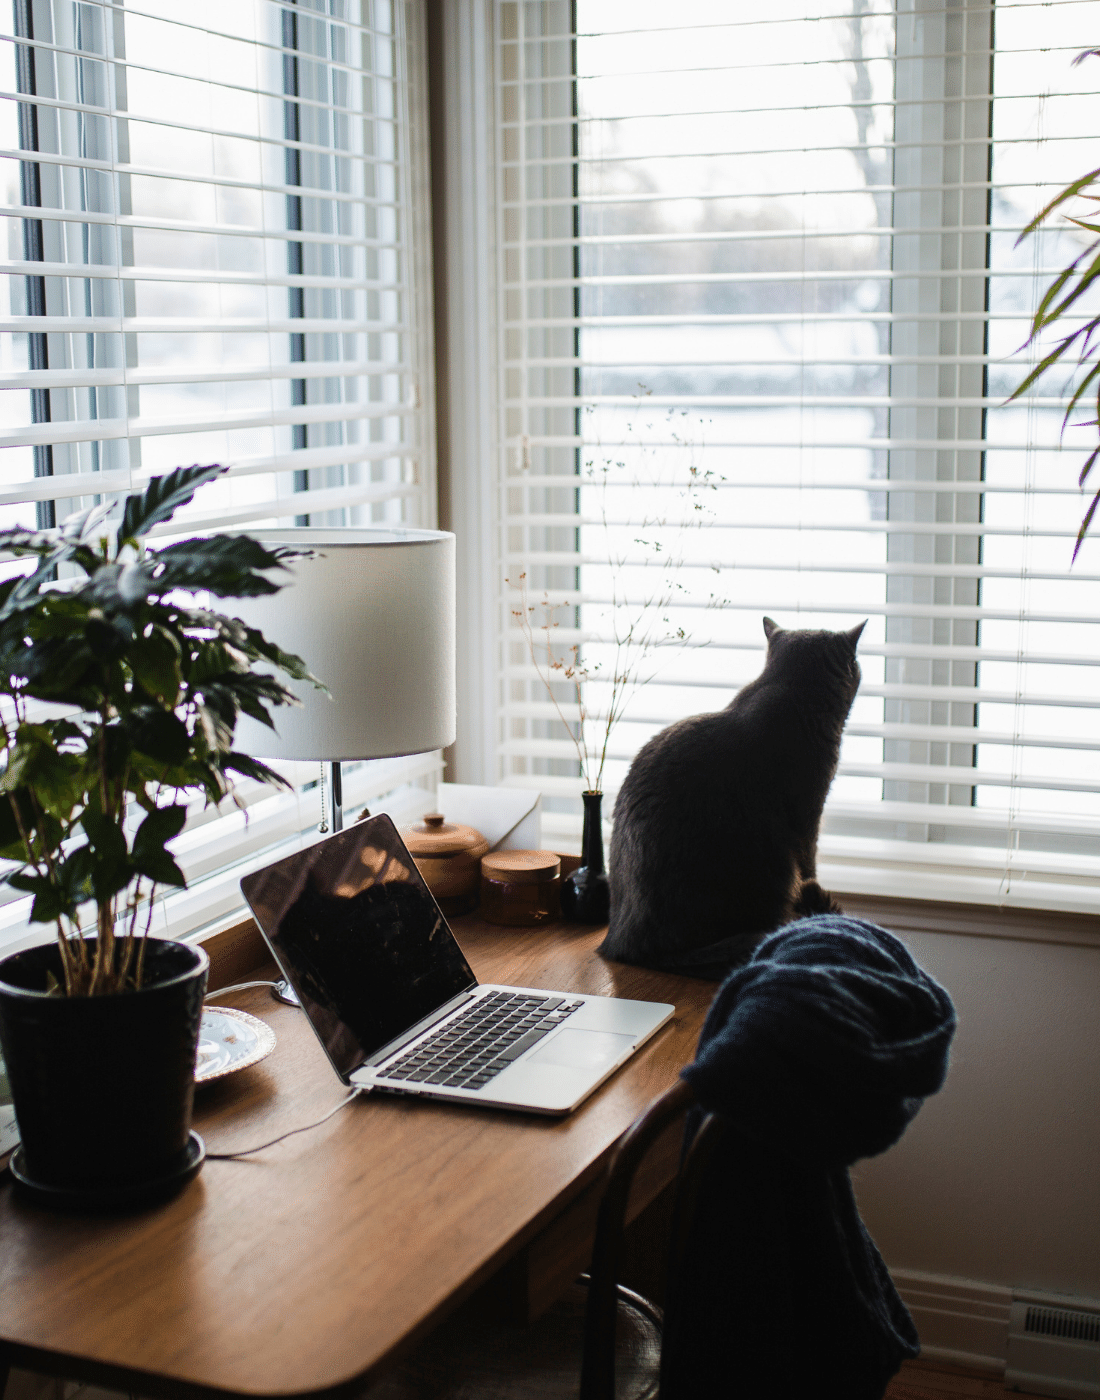 A cat sat on a home office desk in front of a window